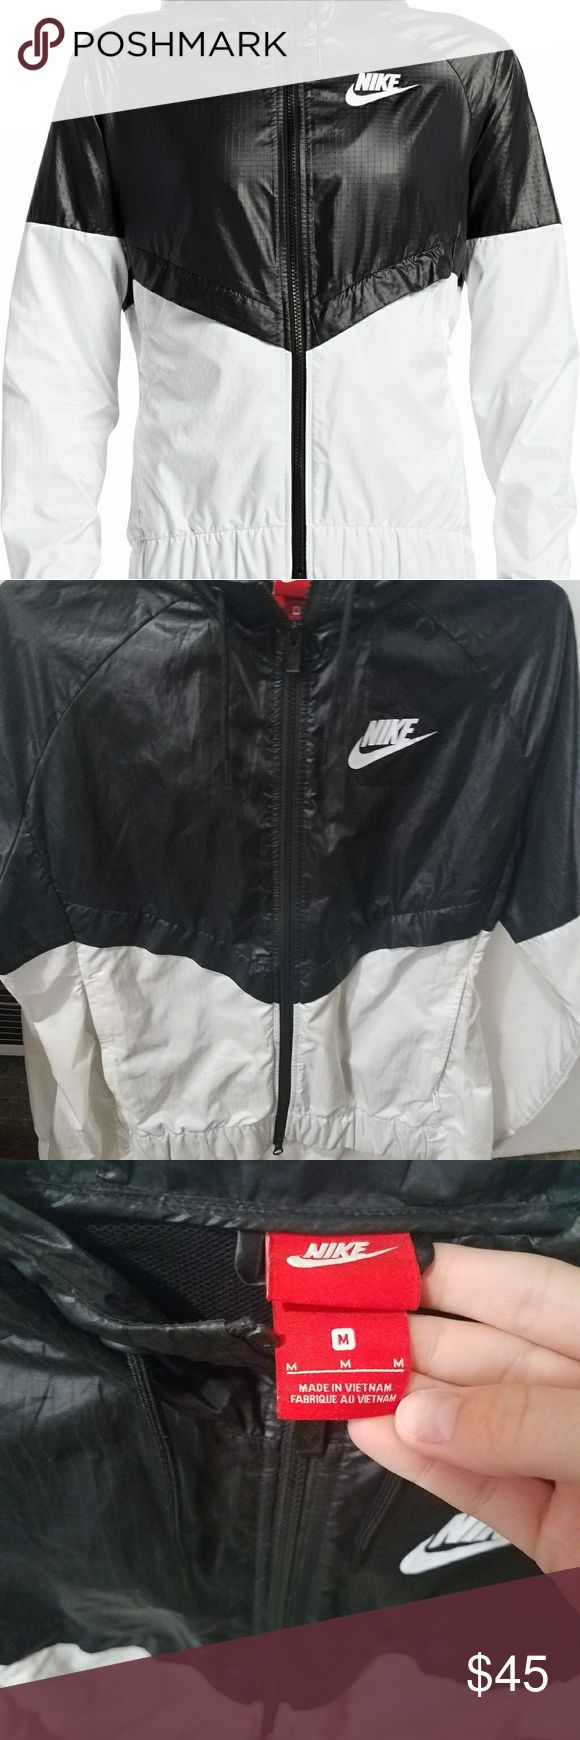 Nike womens sportswear jacket Womens nike jacket. Size medium. Worn very few times and still has a full life left. Easy to clean because of material. Nike Jackets & Coats